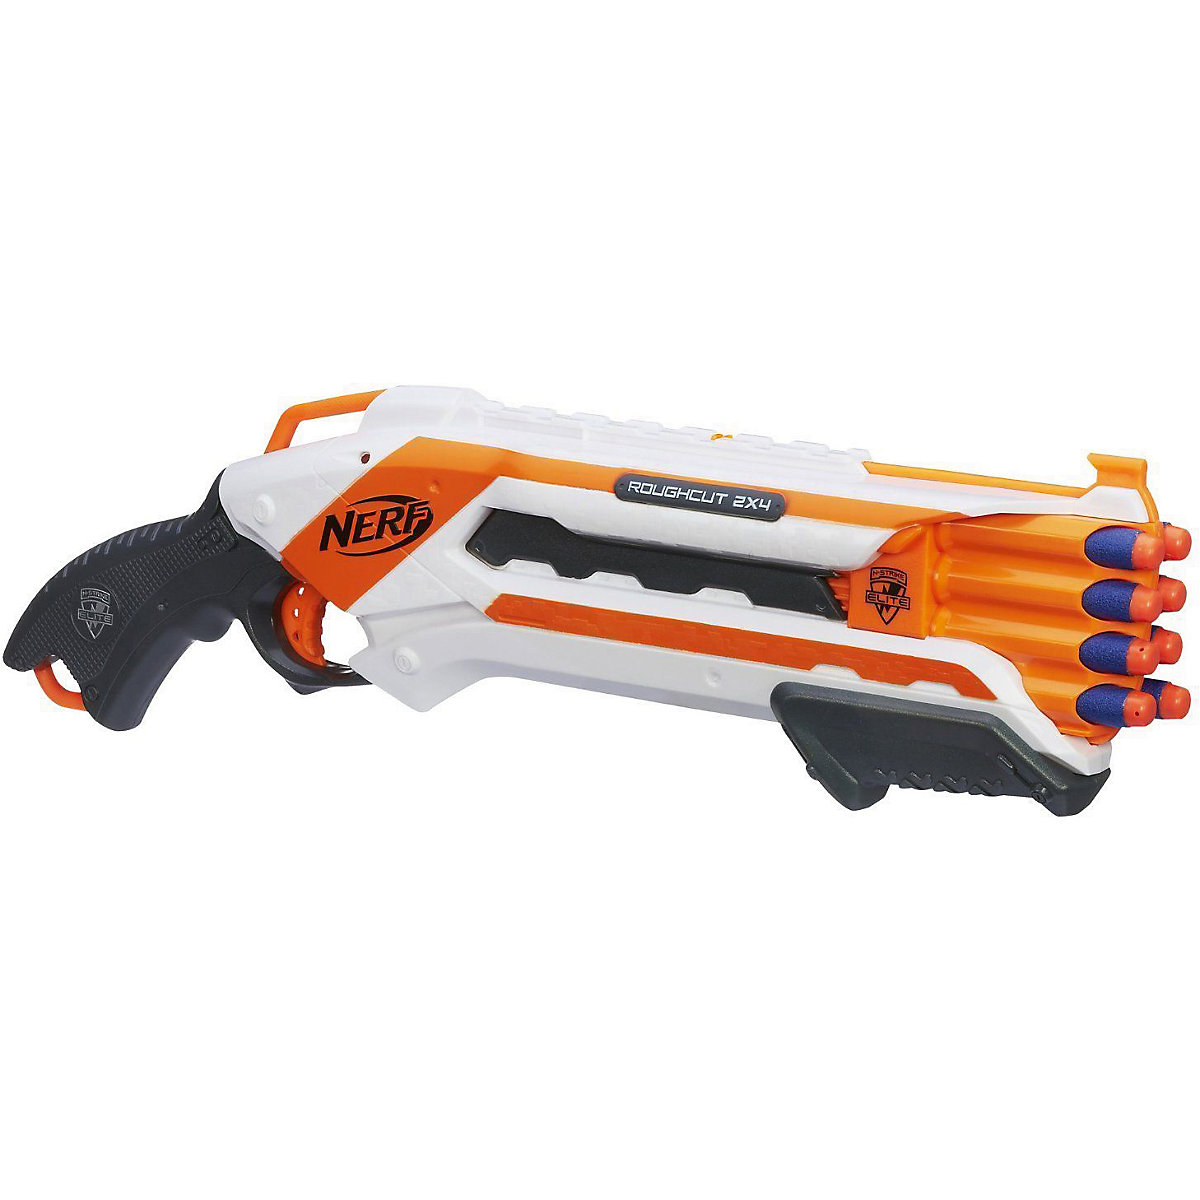 Toy Guns NERF 3222052 Children Kids Toy Gun Weapon Blasters Boys Shooting games Outdoor play children play house toy